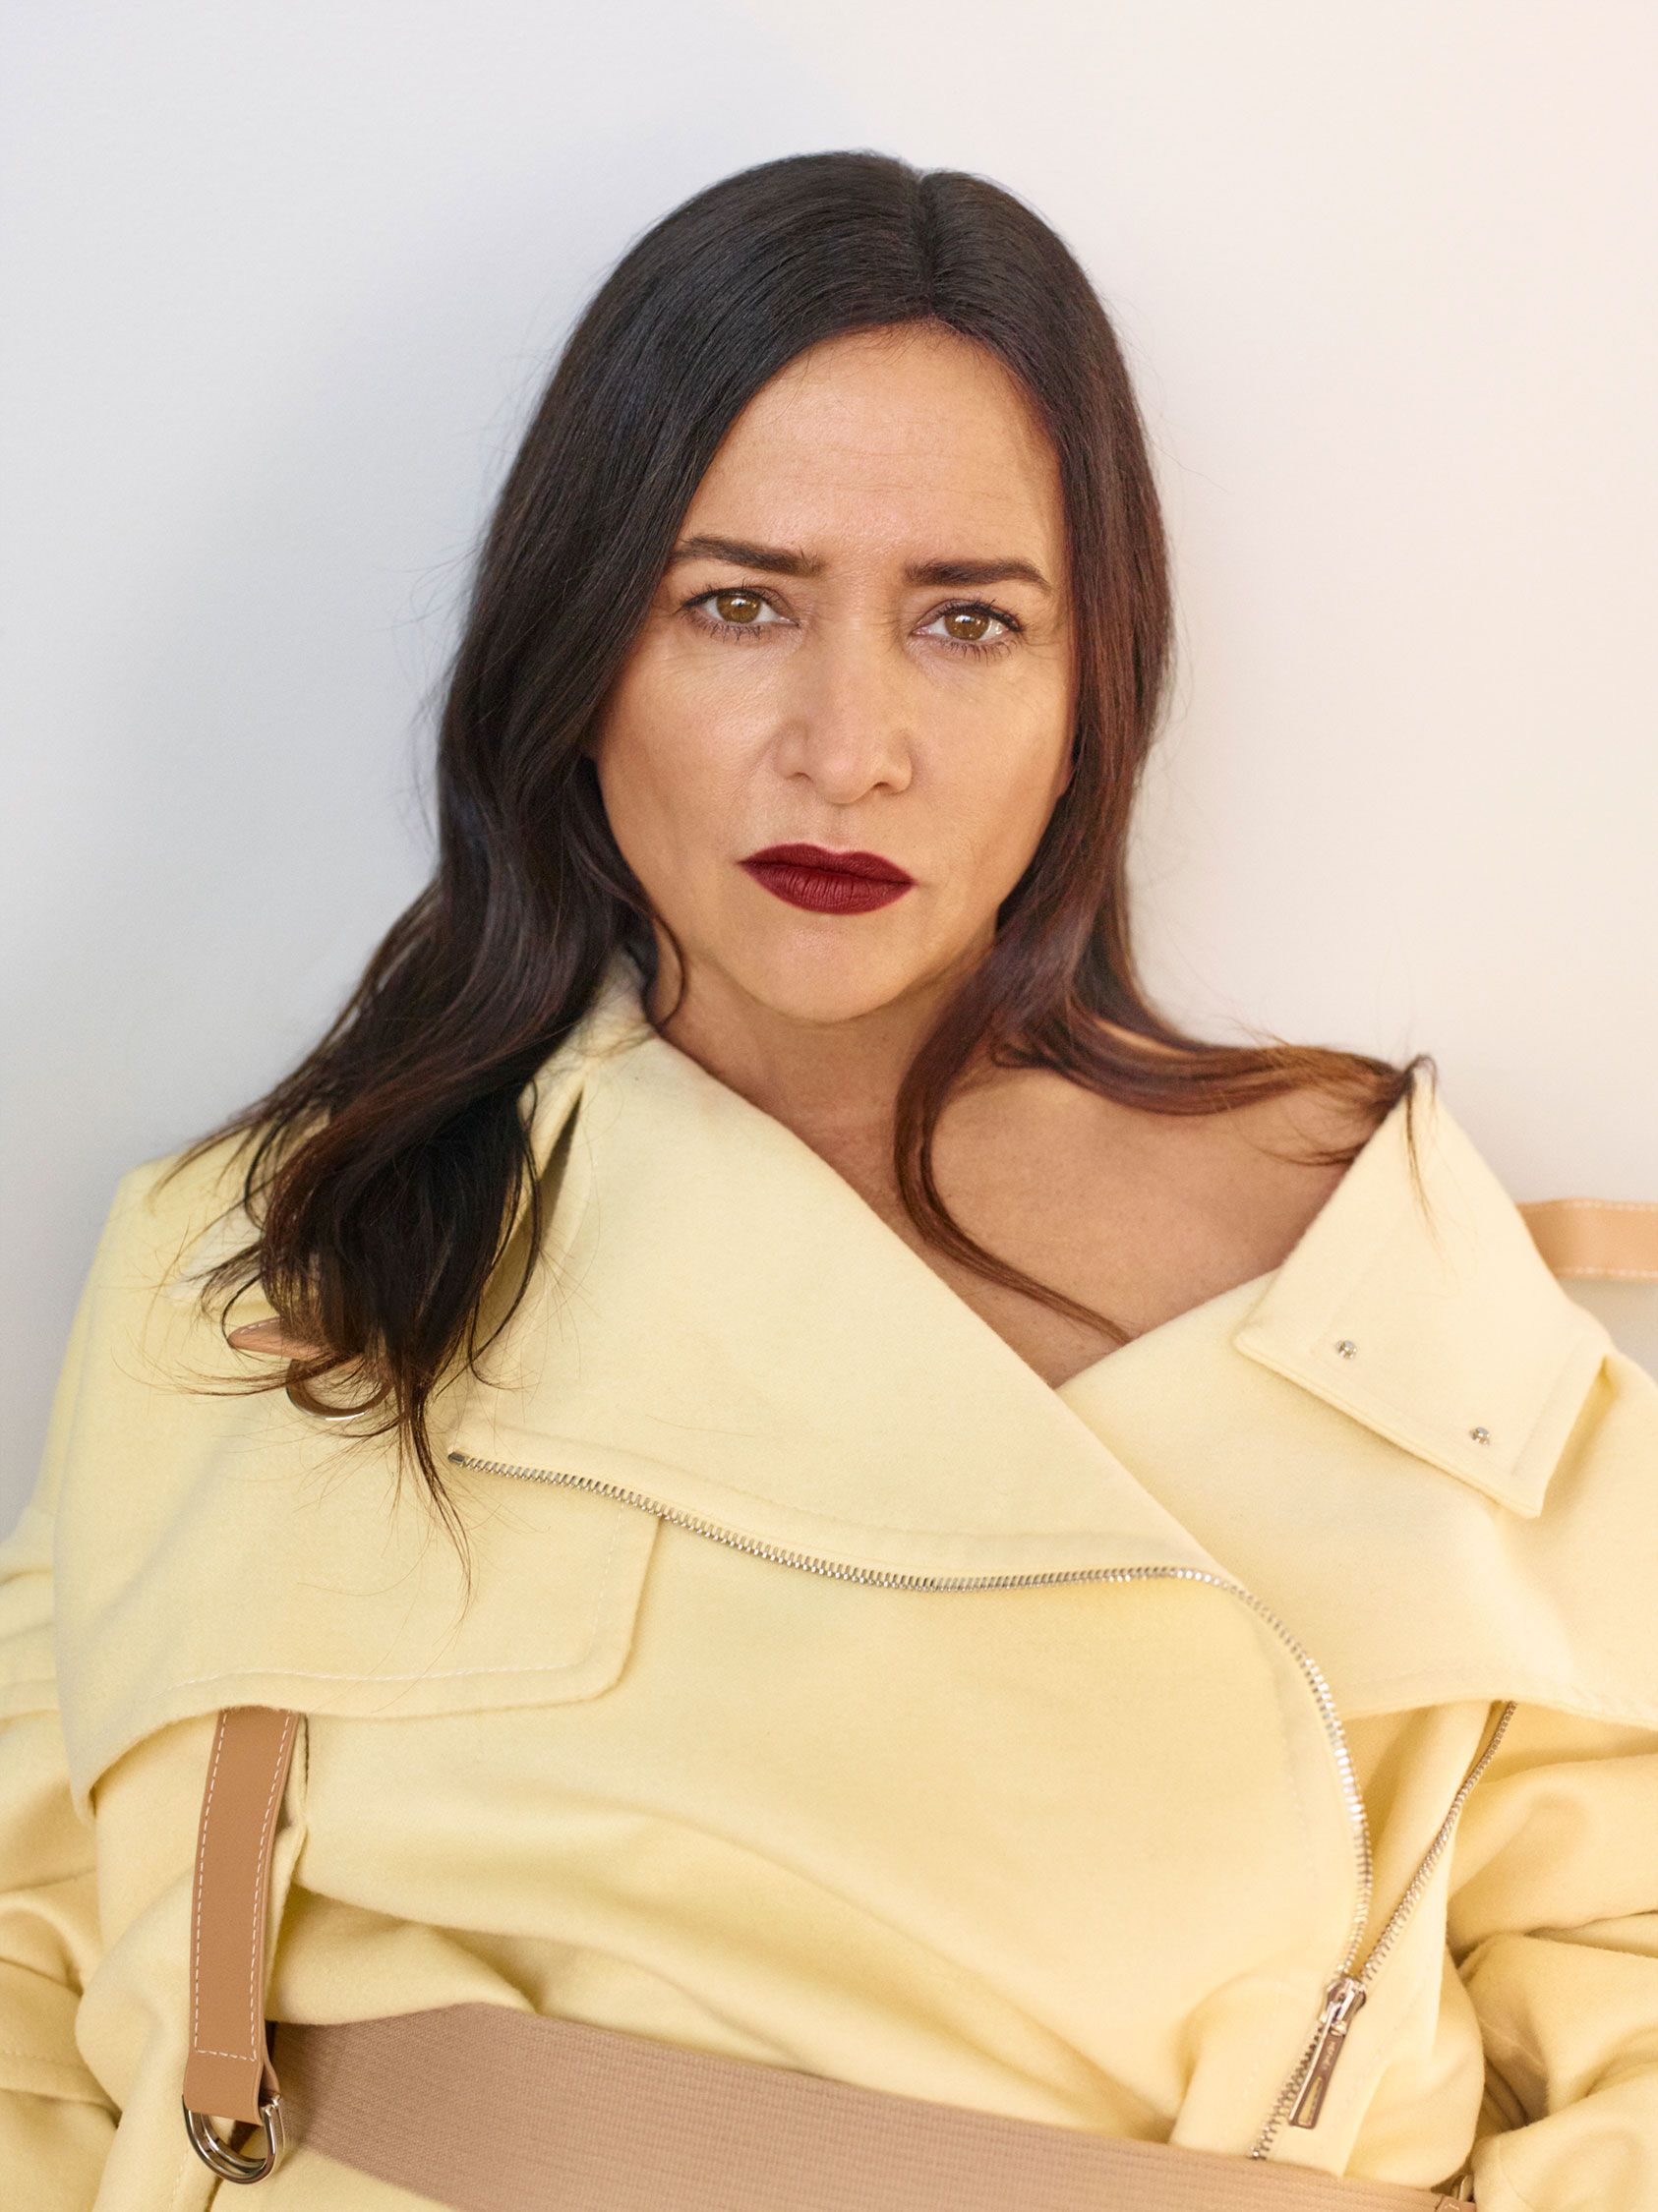 Pamela Adlon Is the Cut's March Cover Woman